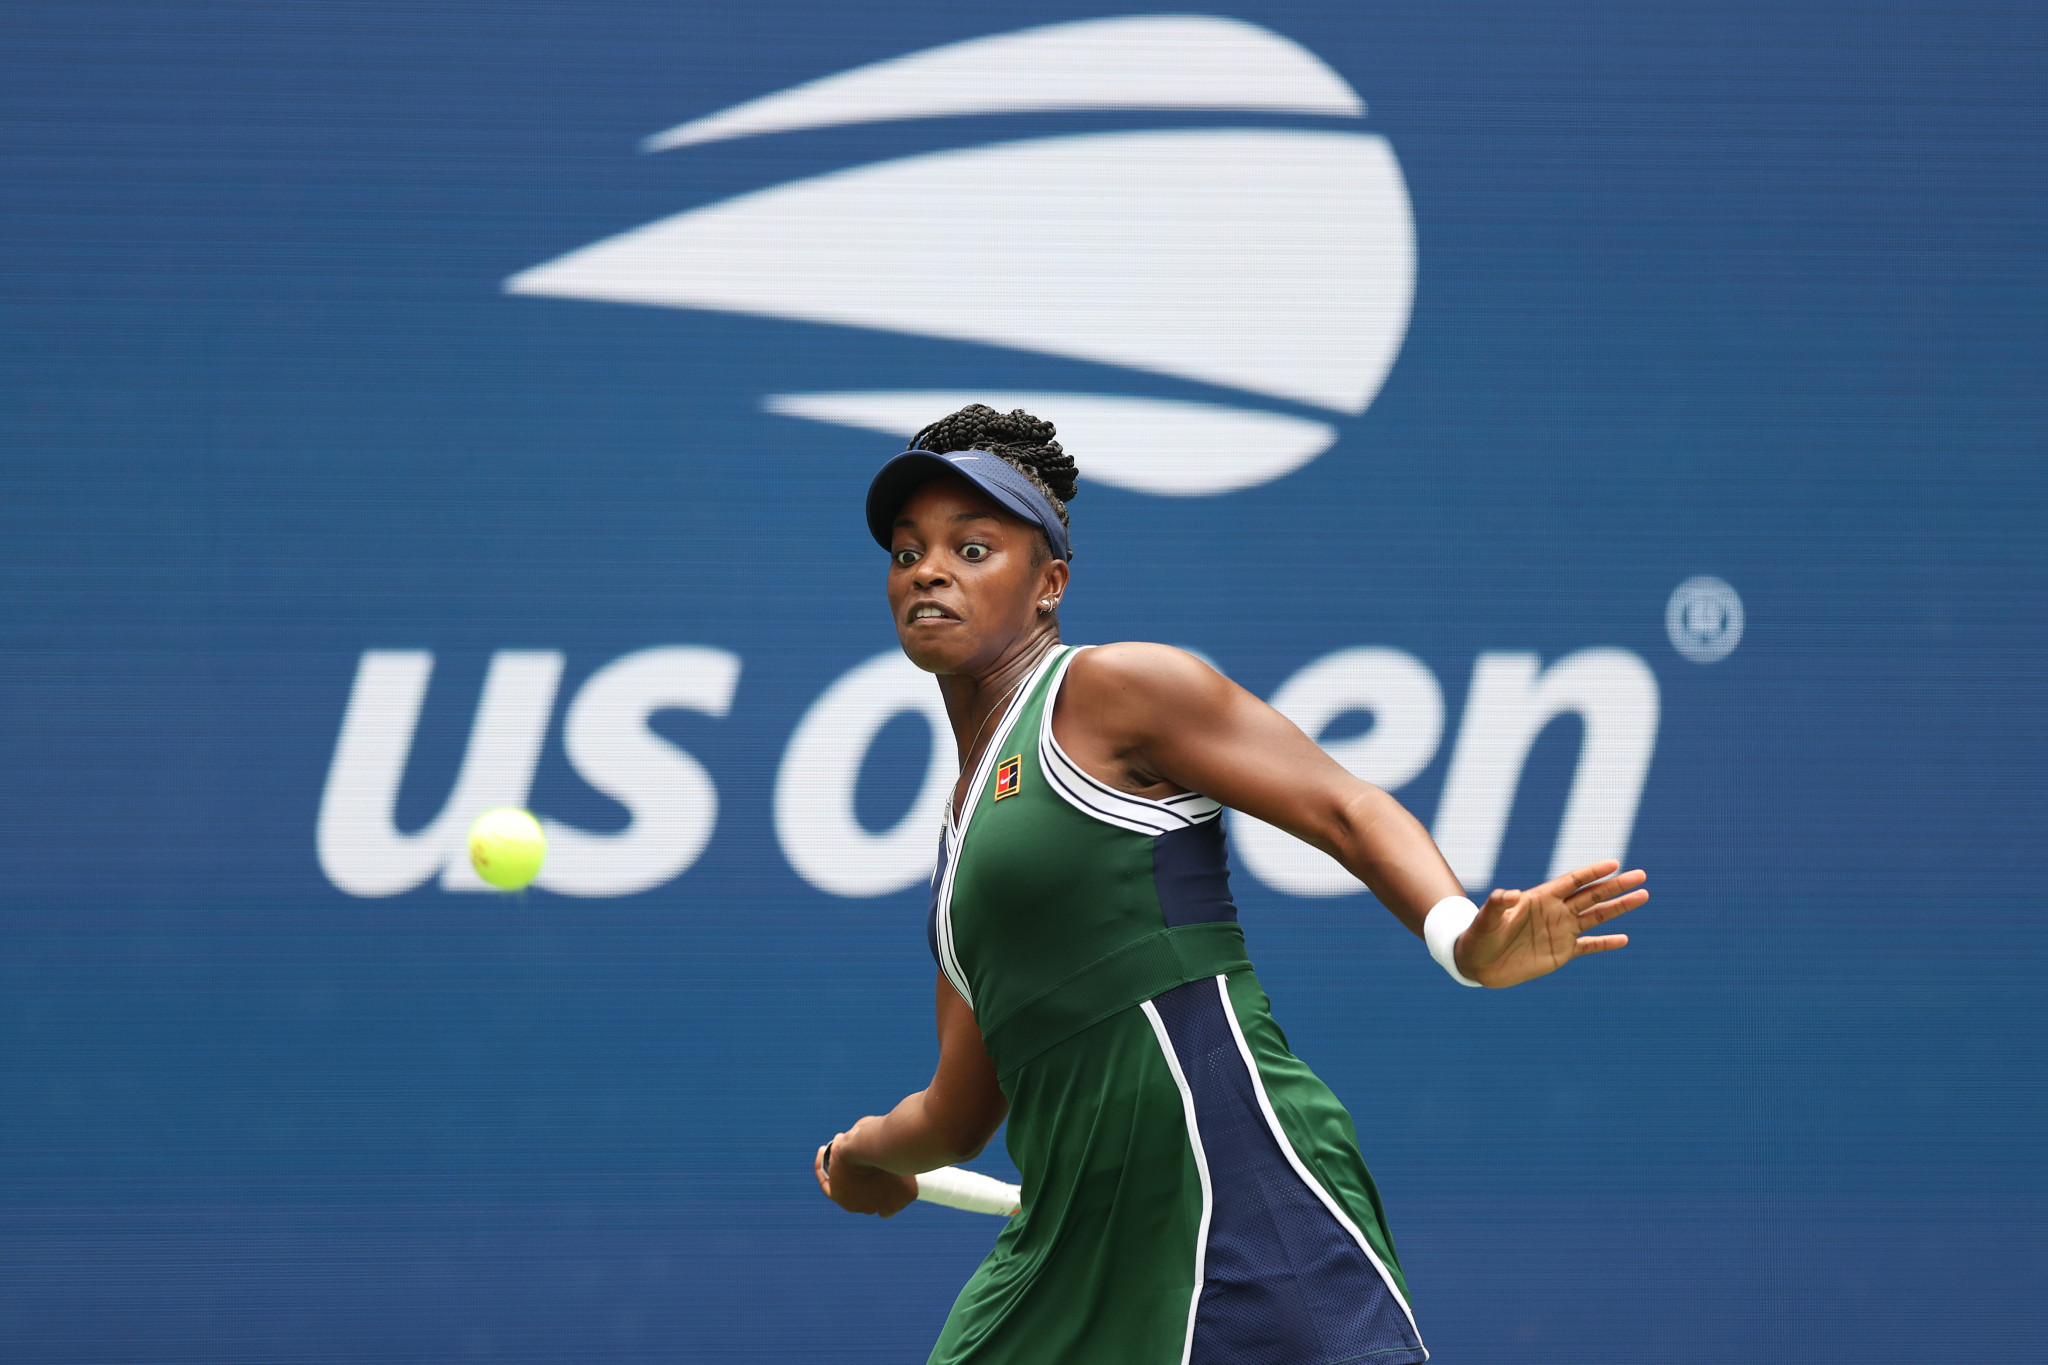 Stephens receives more than 2,000 messages of racist and sexist abuse following US Open defeat